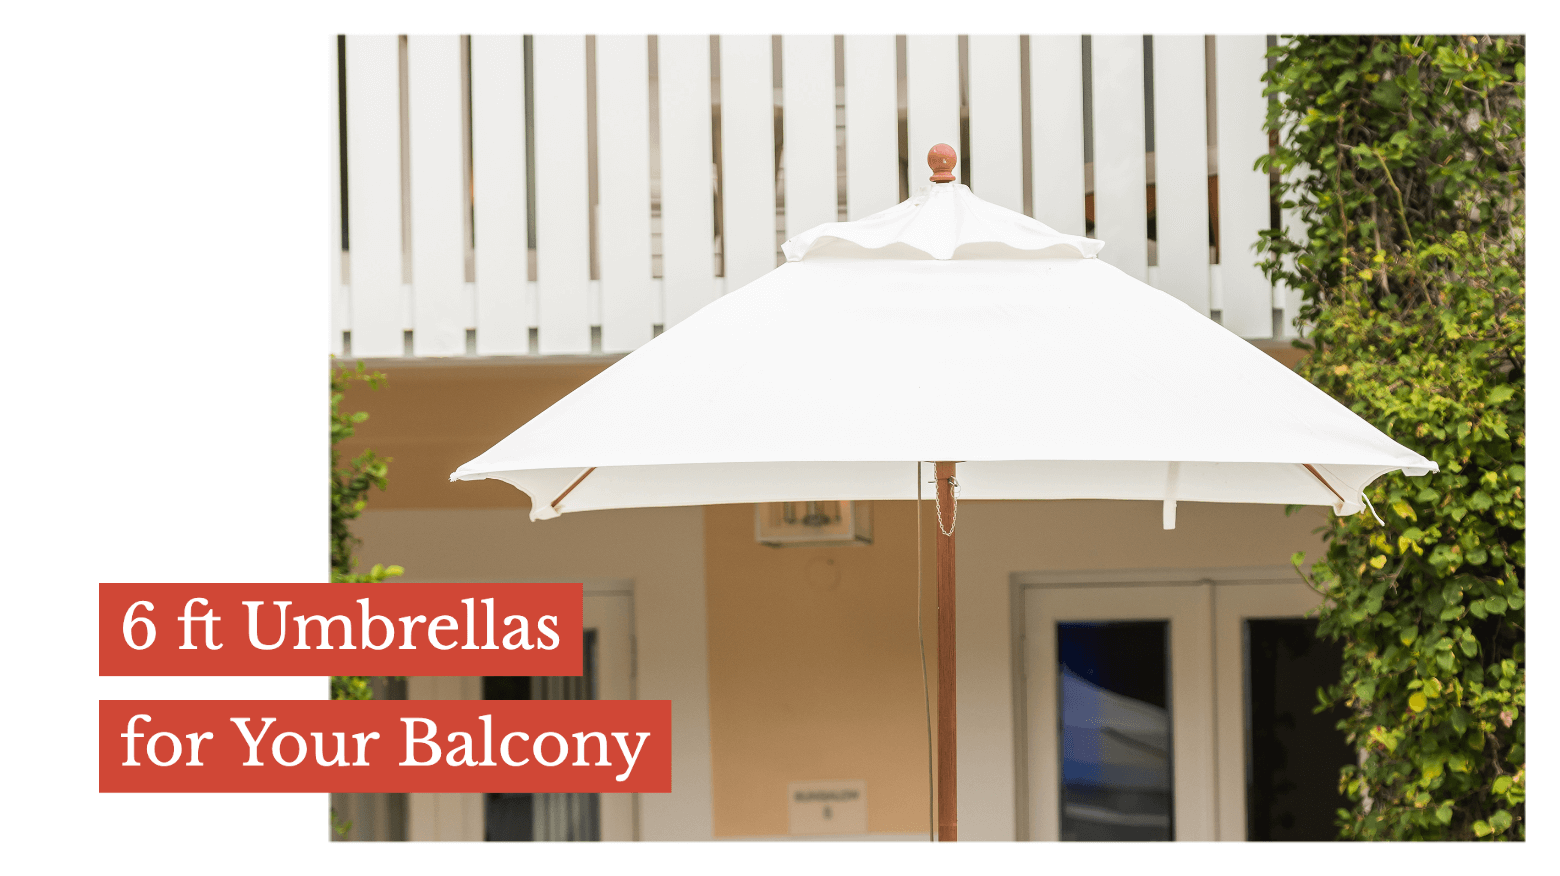 6 Ft. Umbrellas for your Balcony